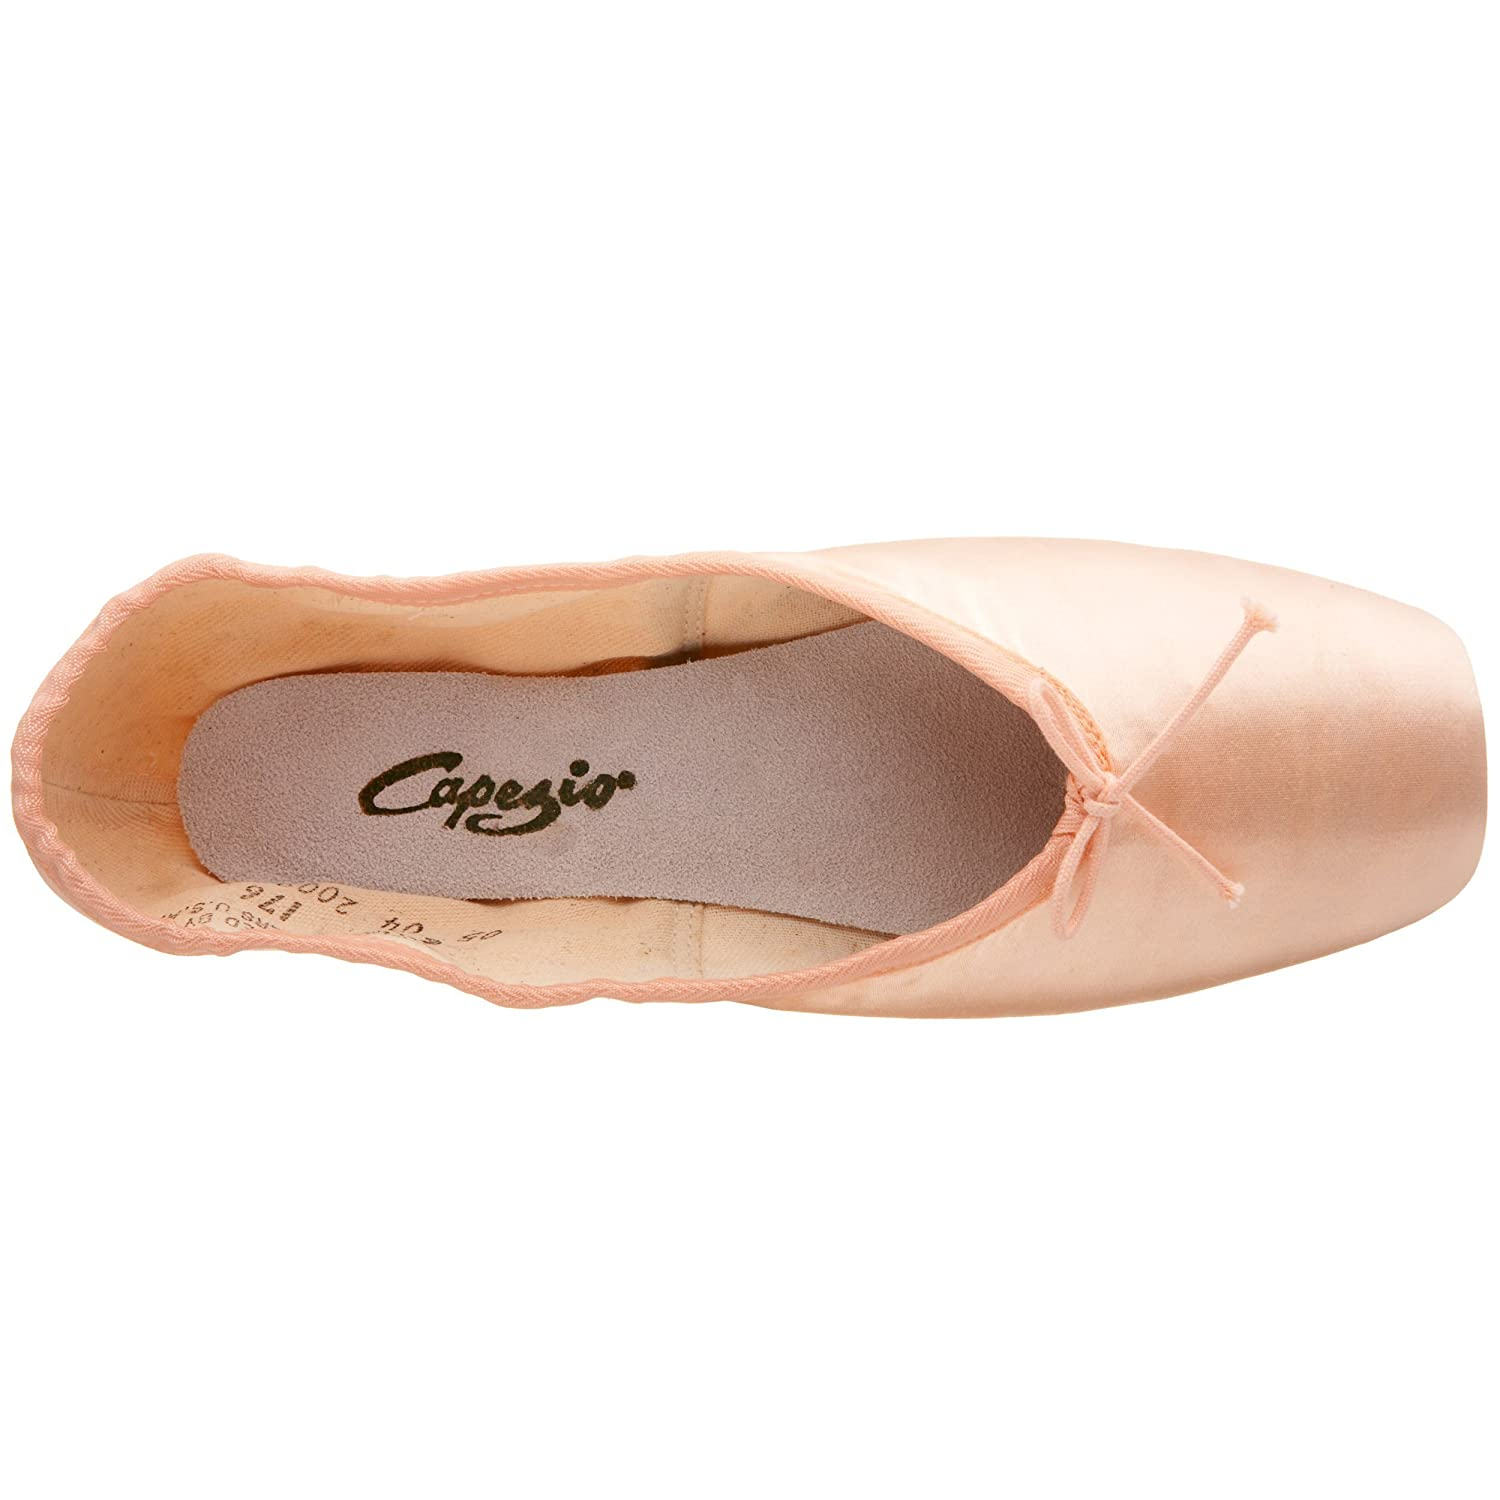 Capezio Womens Contempora Pointe Shoe,European Pink,7 D US